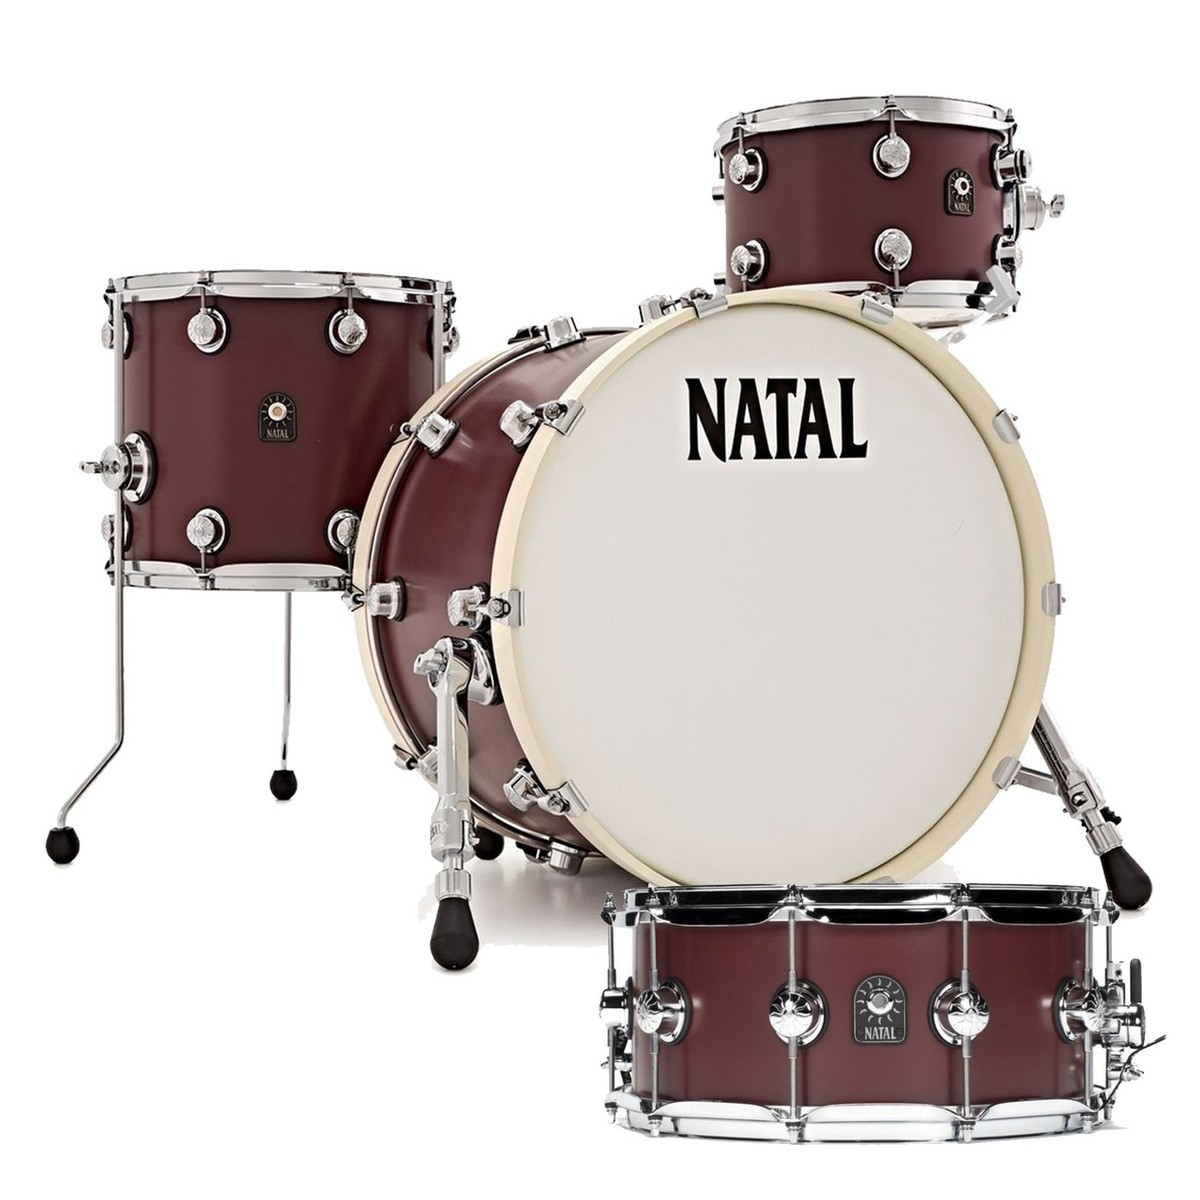 Natal - free matching snare drum with Cafe Racer drum kits